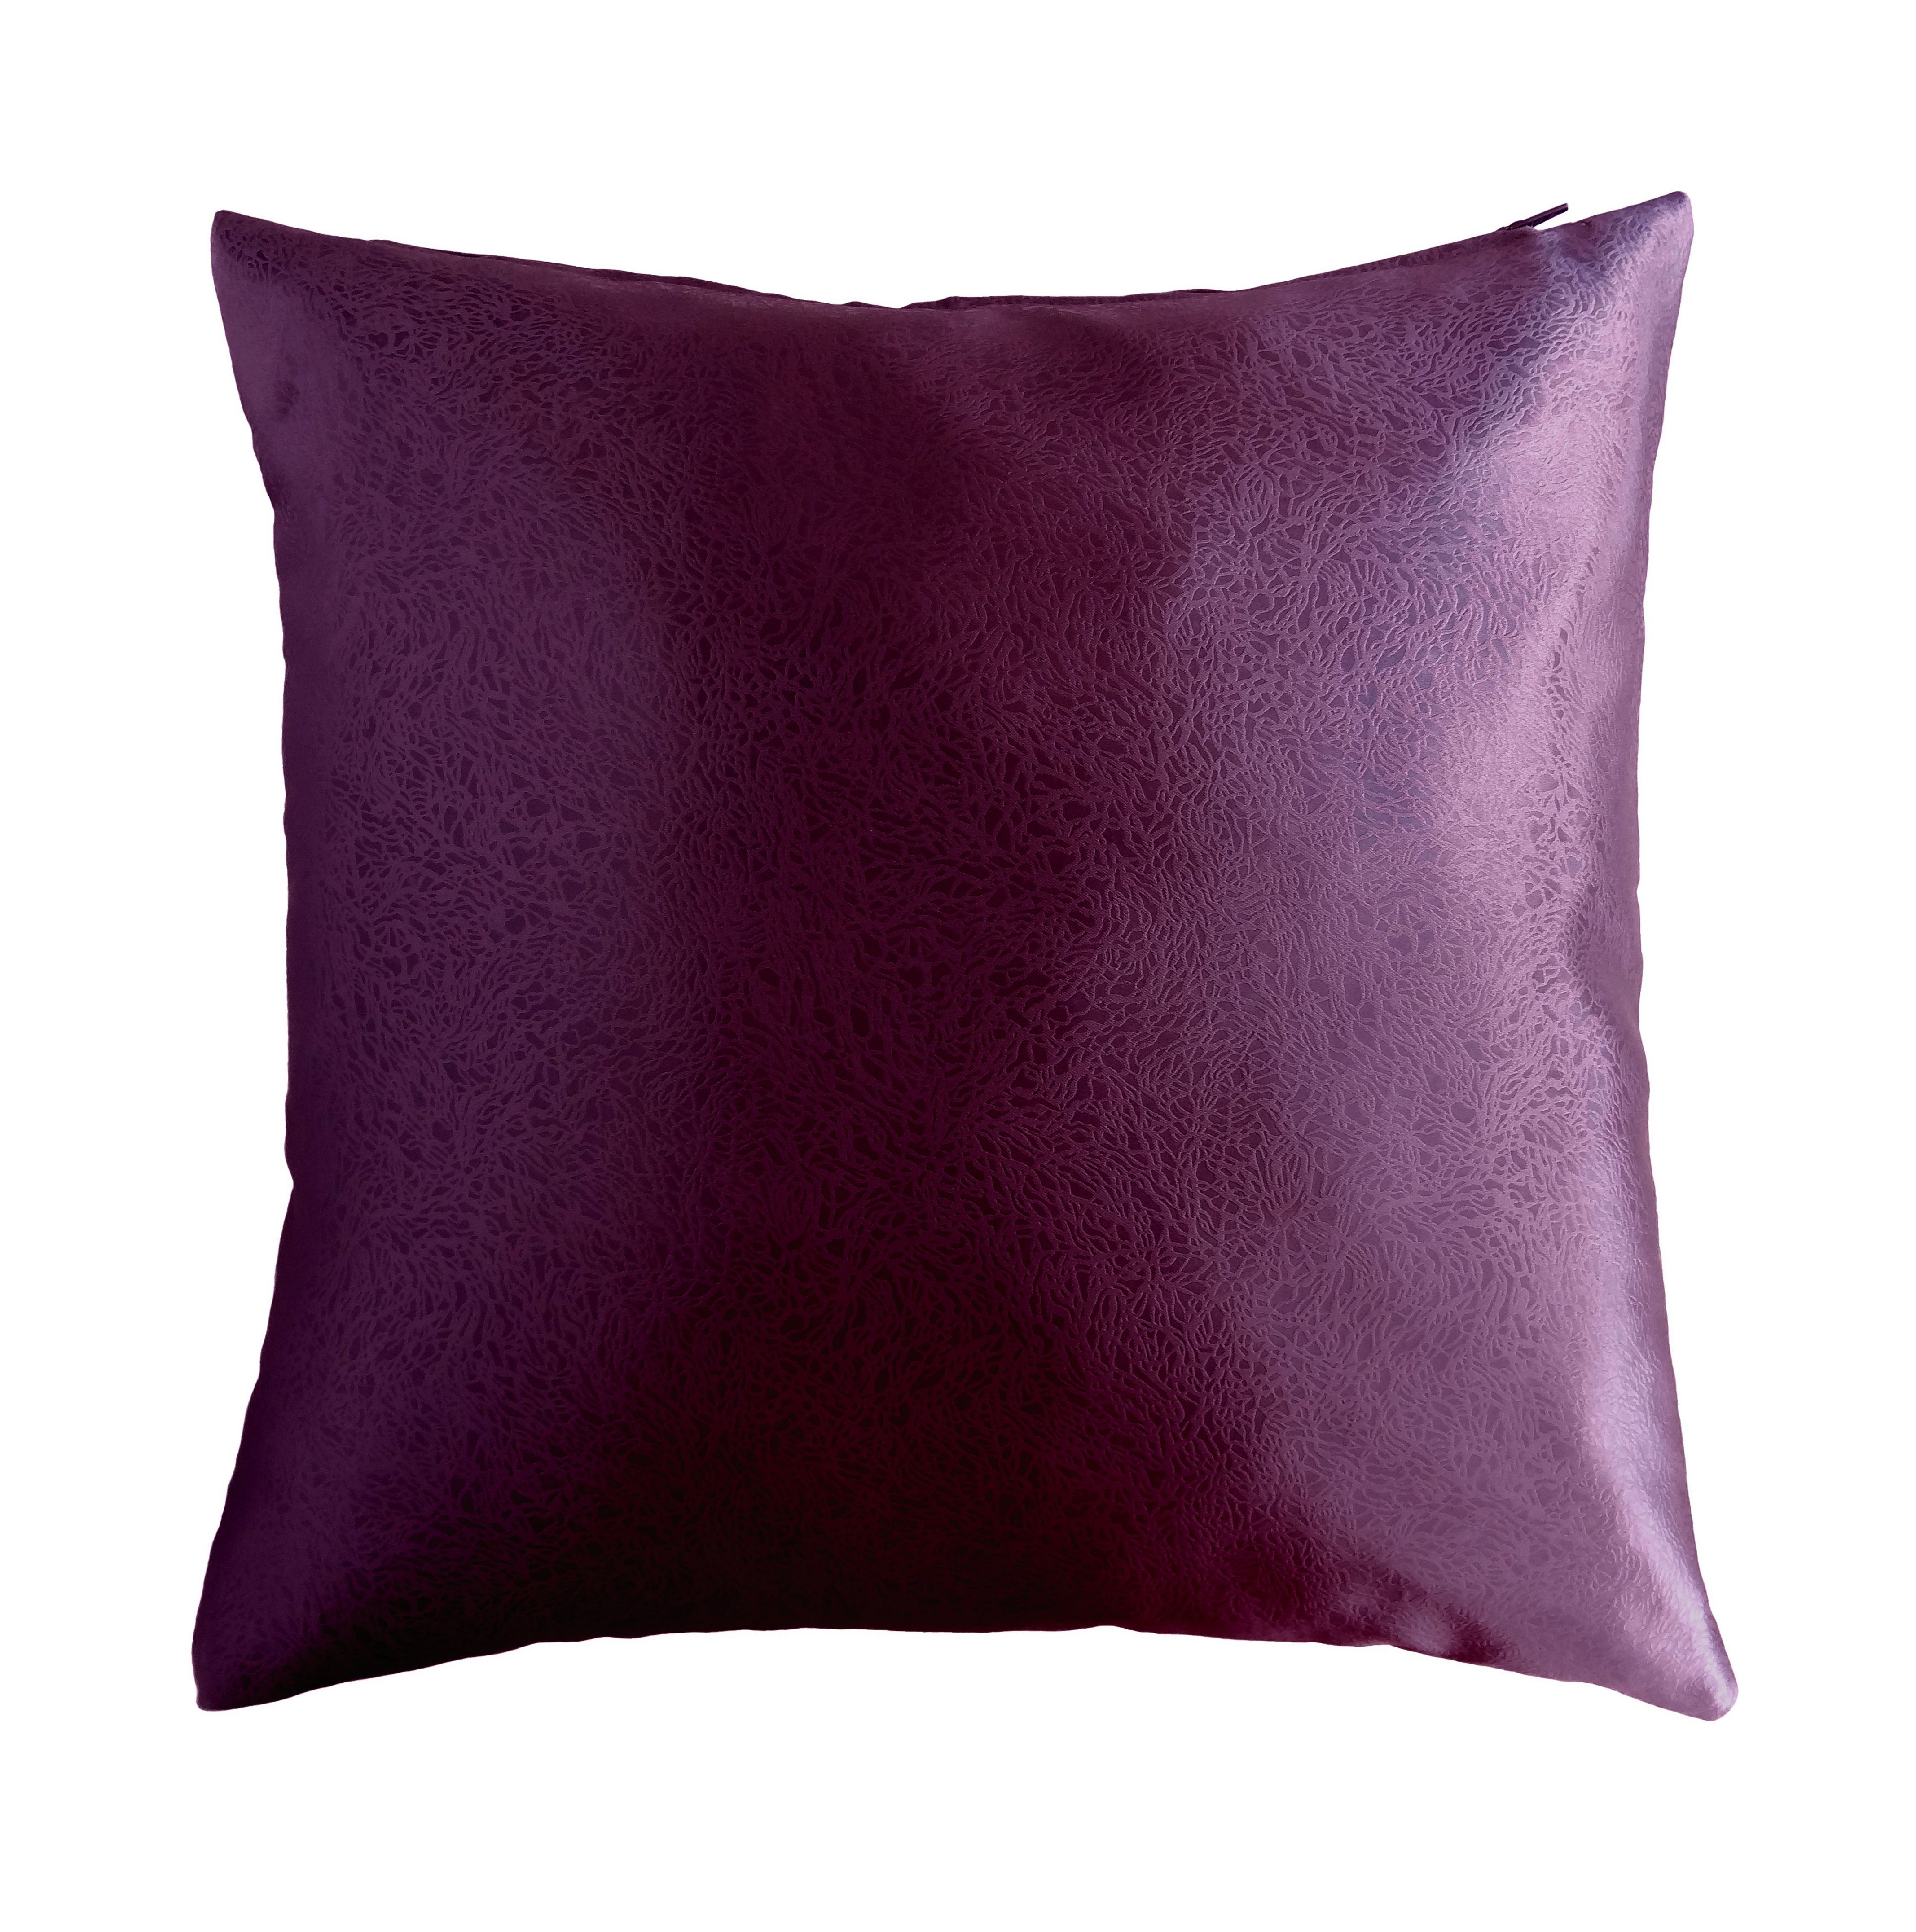 decorative case blue dark is cushion image tree itm pillow loading sub cover teal printed square